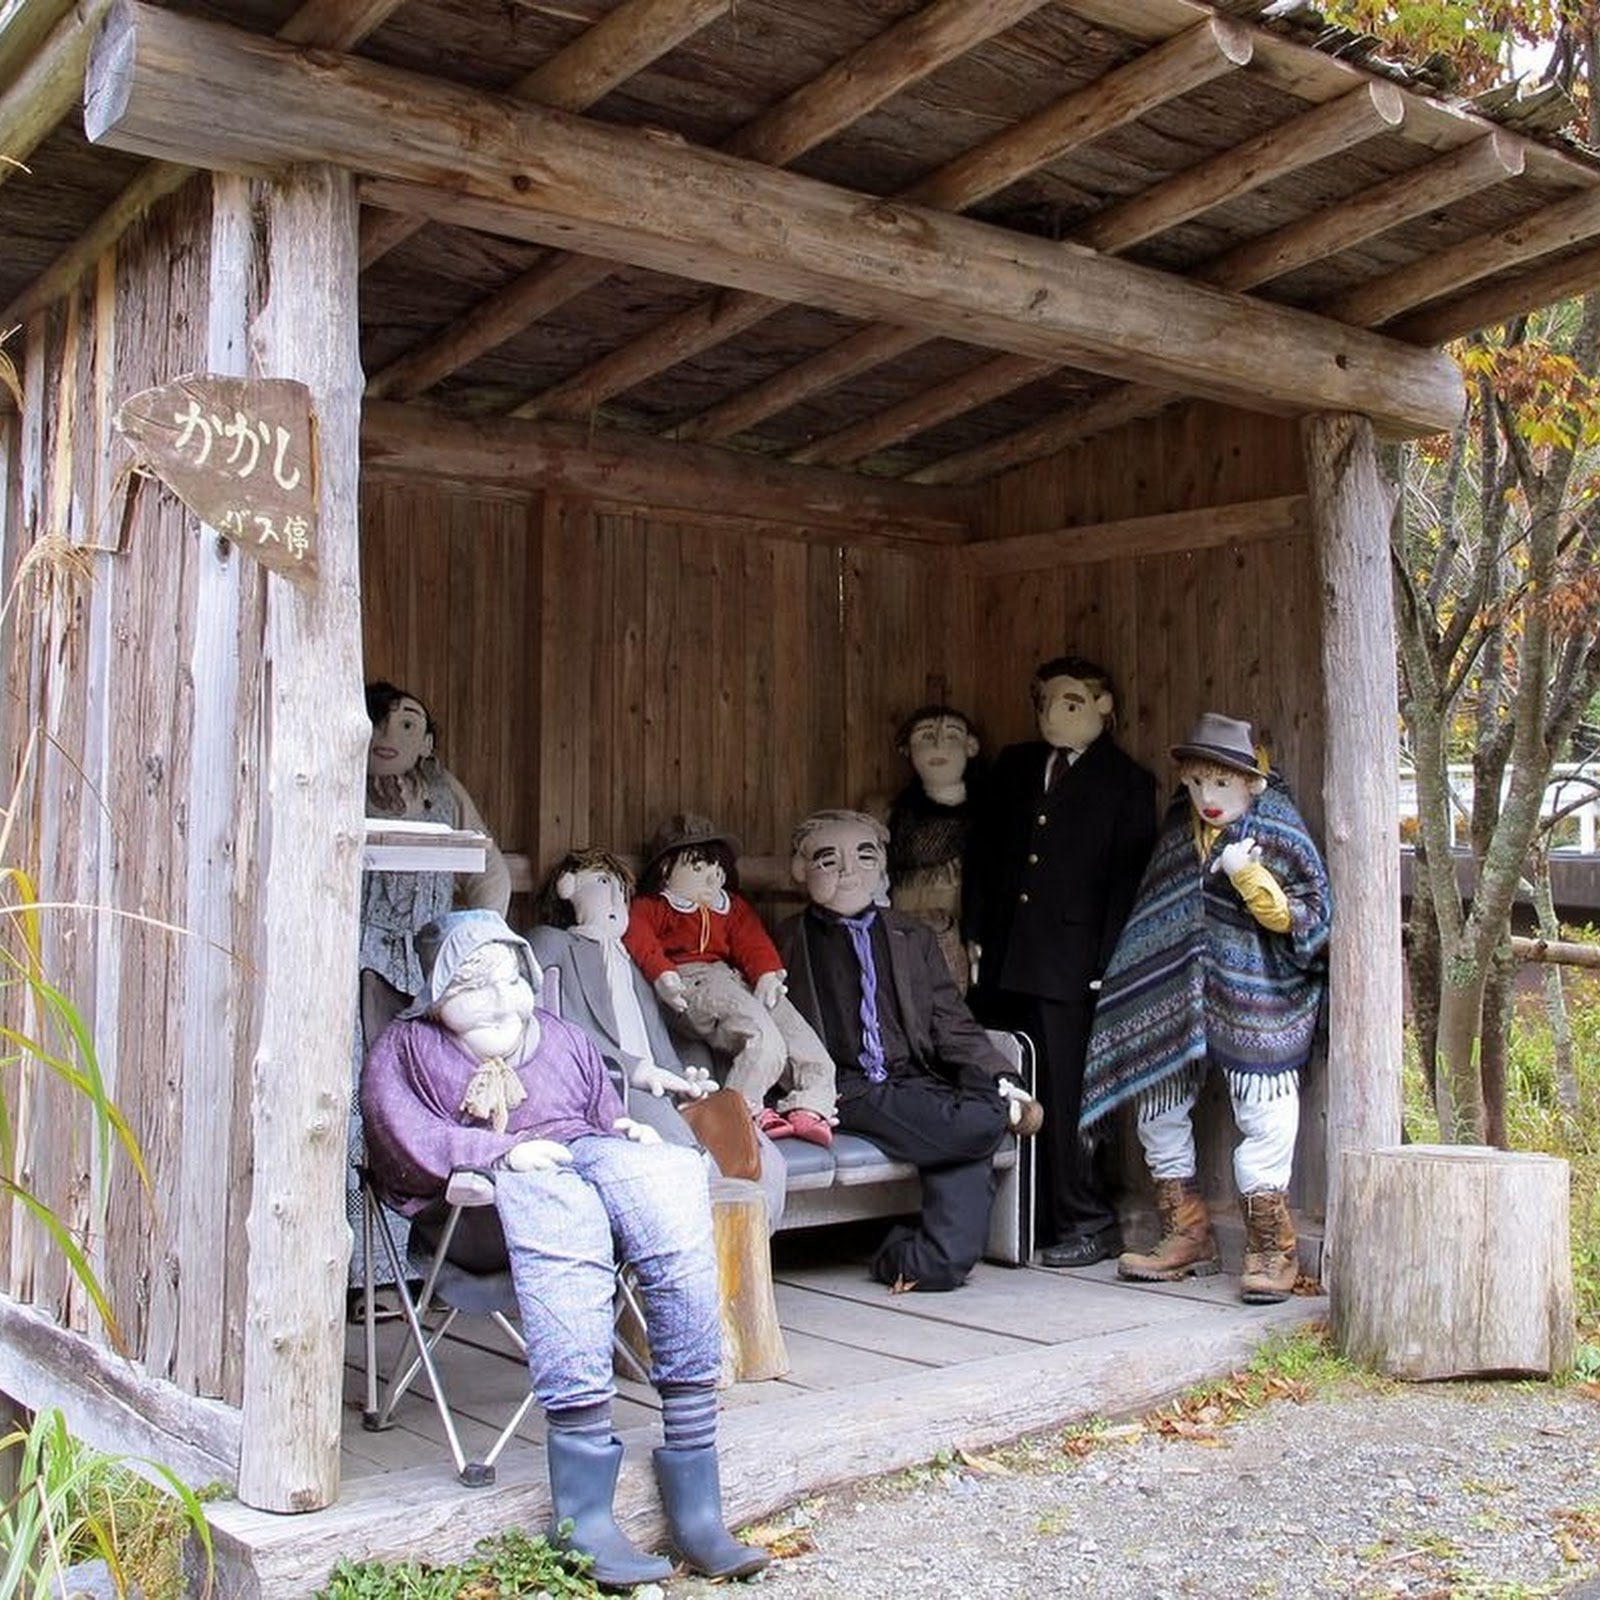 Nagoro: The Japanese Village of Dolls